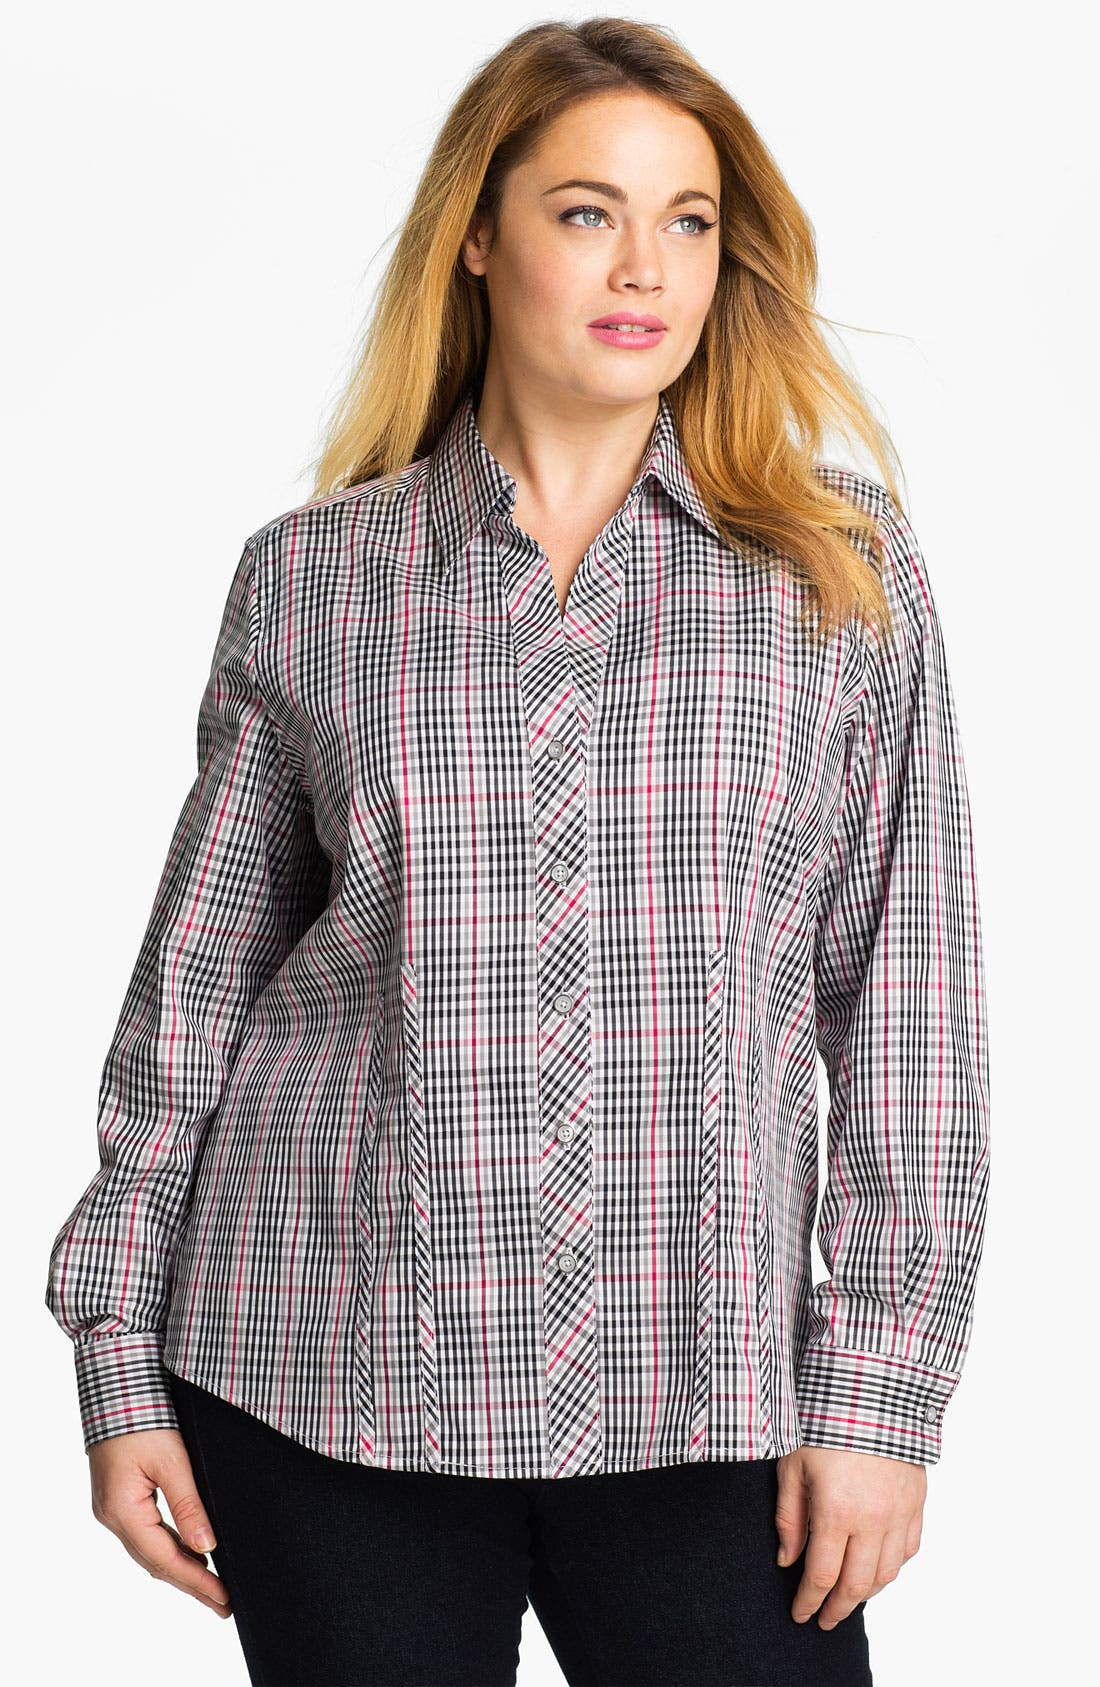 Main Image - Foxcroft 'Holiday Check' Wrinkle Free Shaped Shirt (Plus)